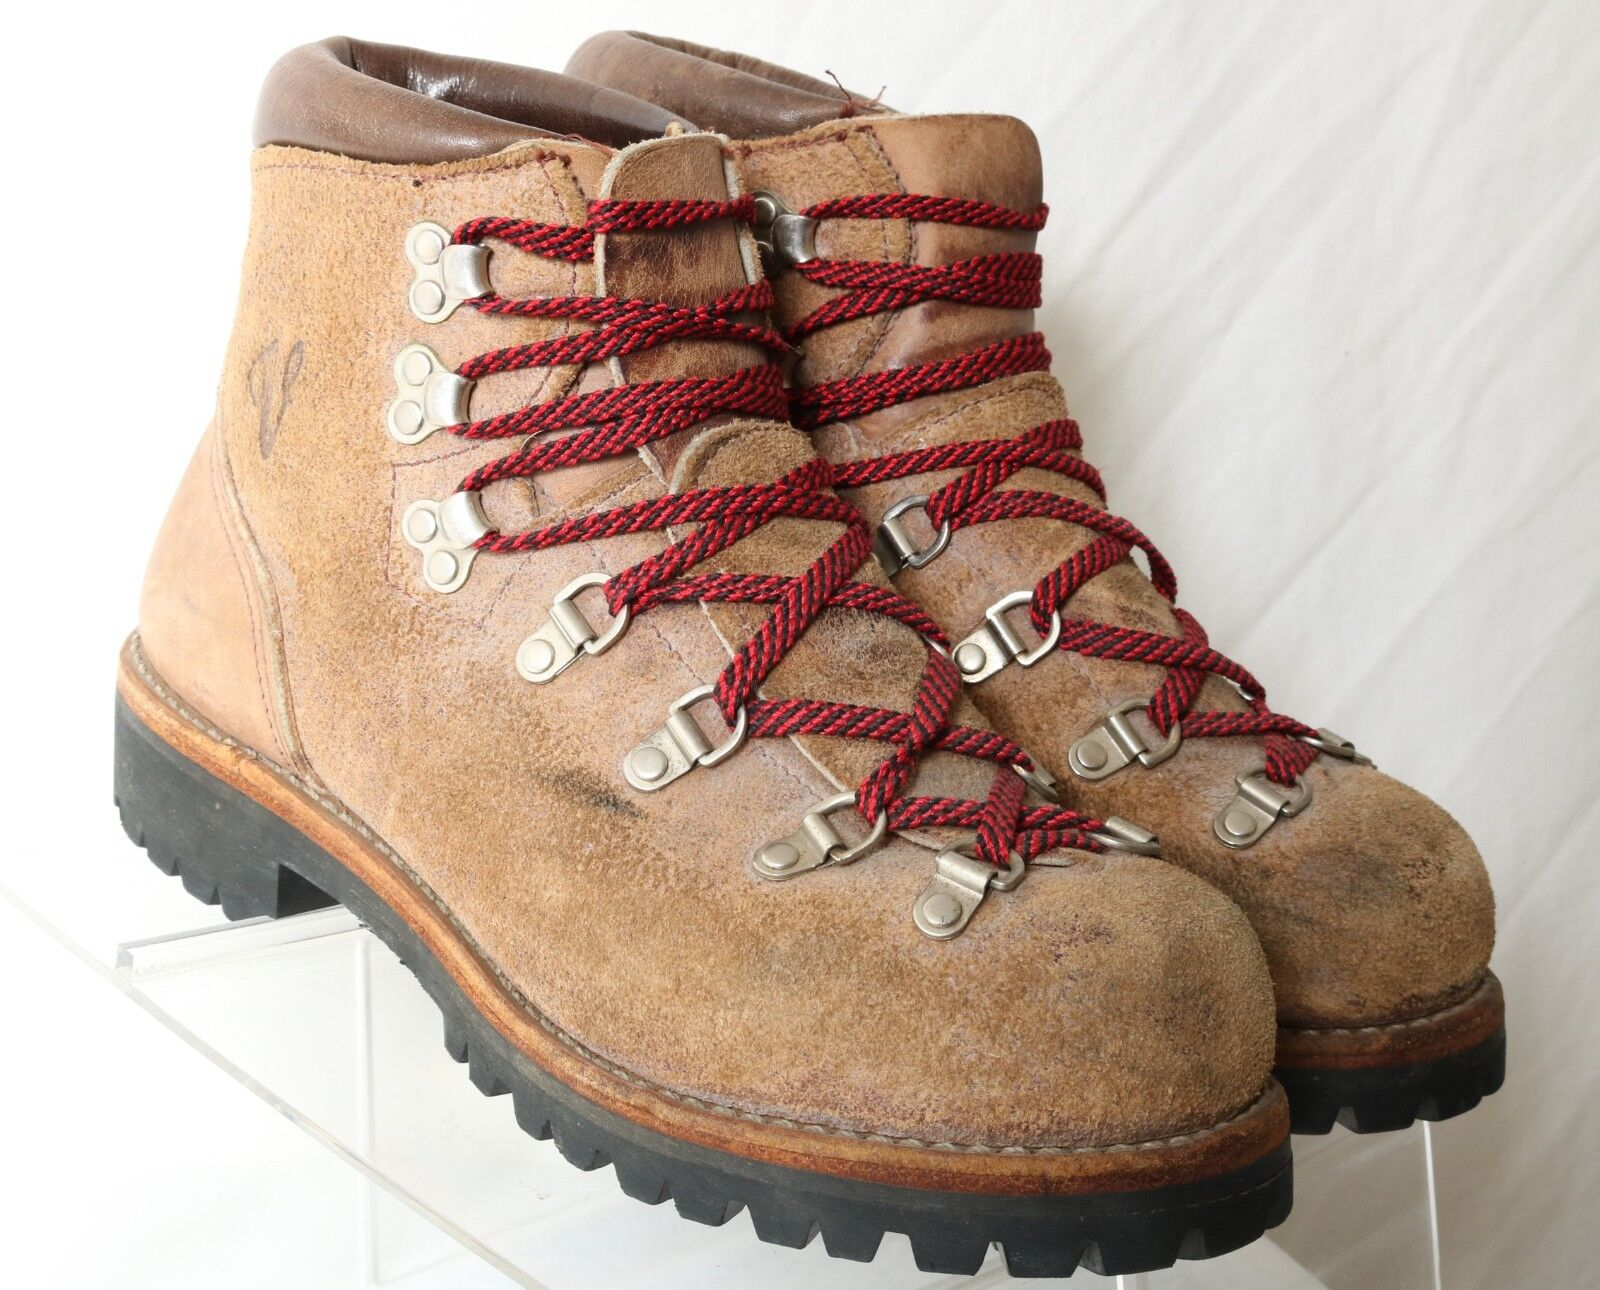 Vintage Vasque Brown 1970's Mountaineering Boot 09404 USA Men US 7.5C